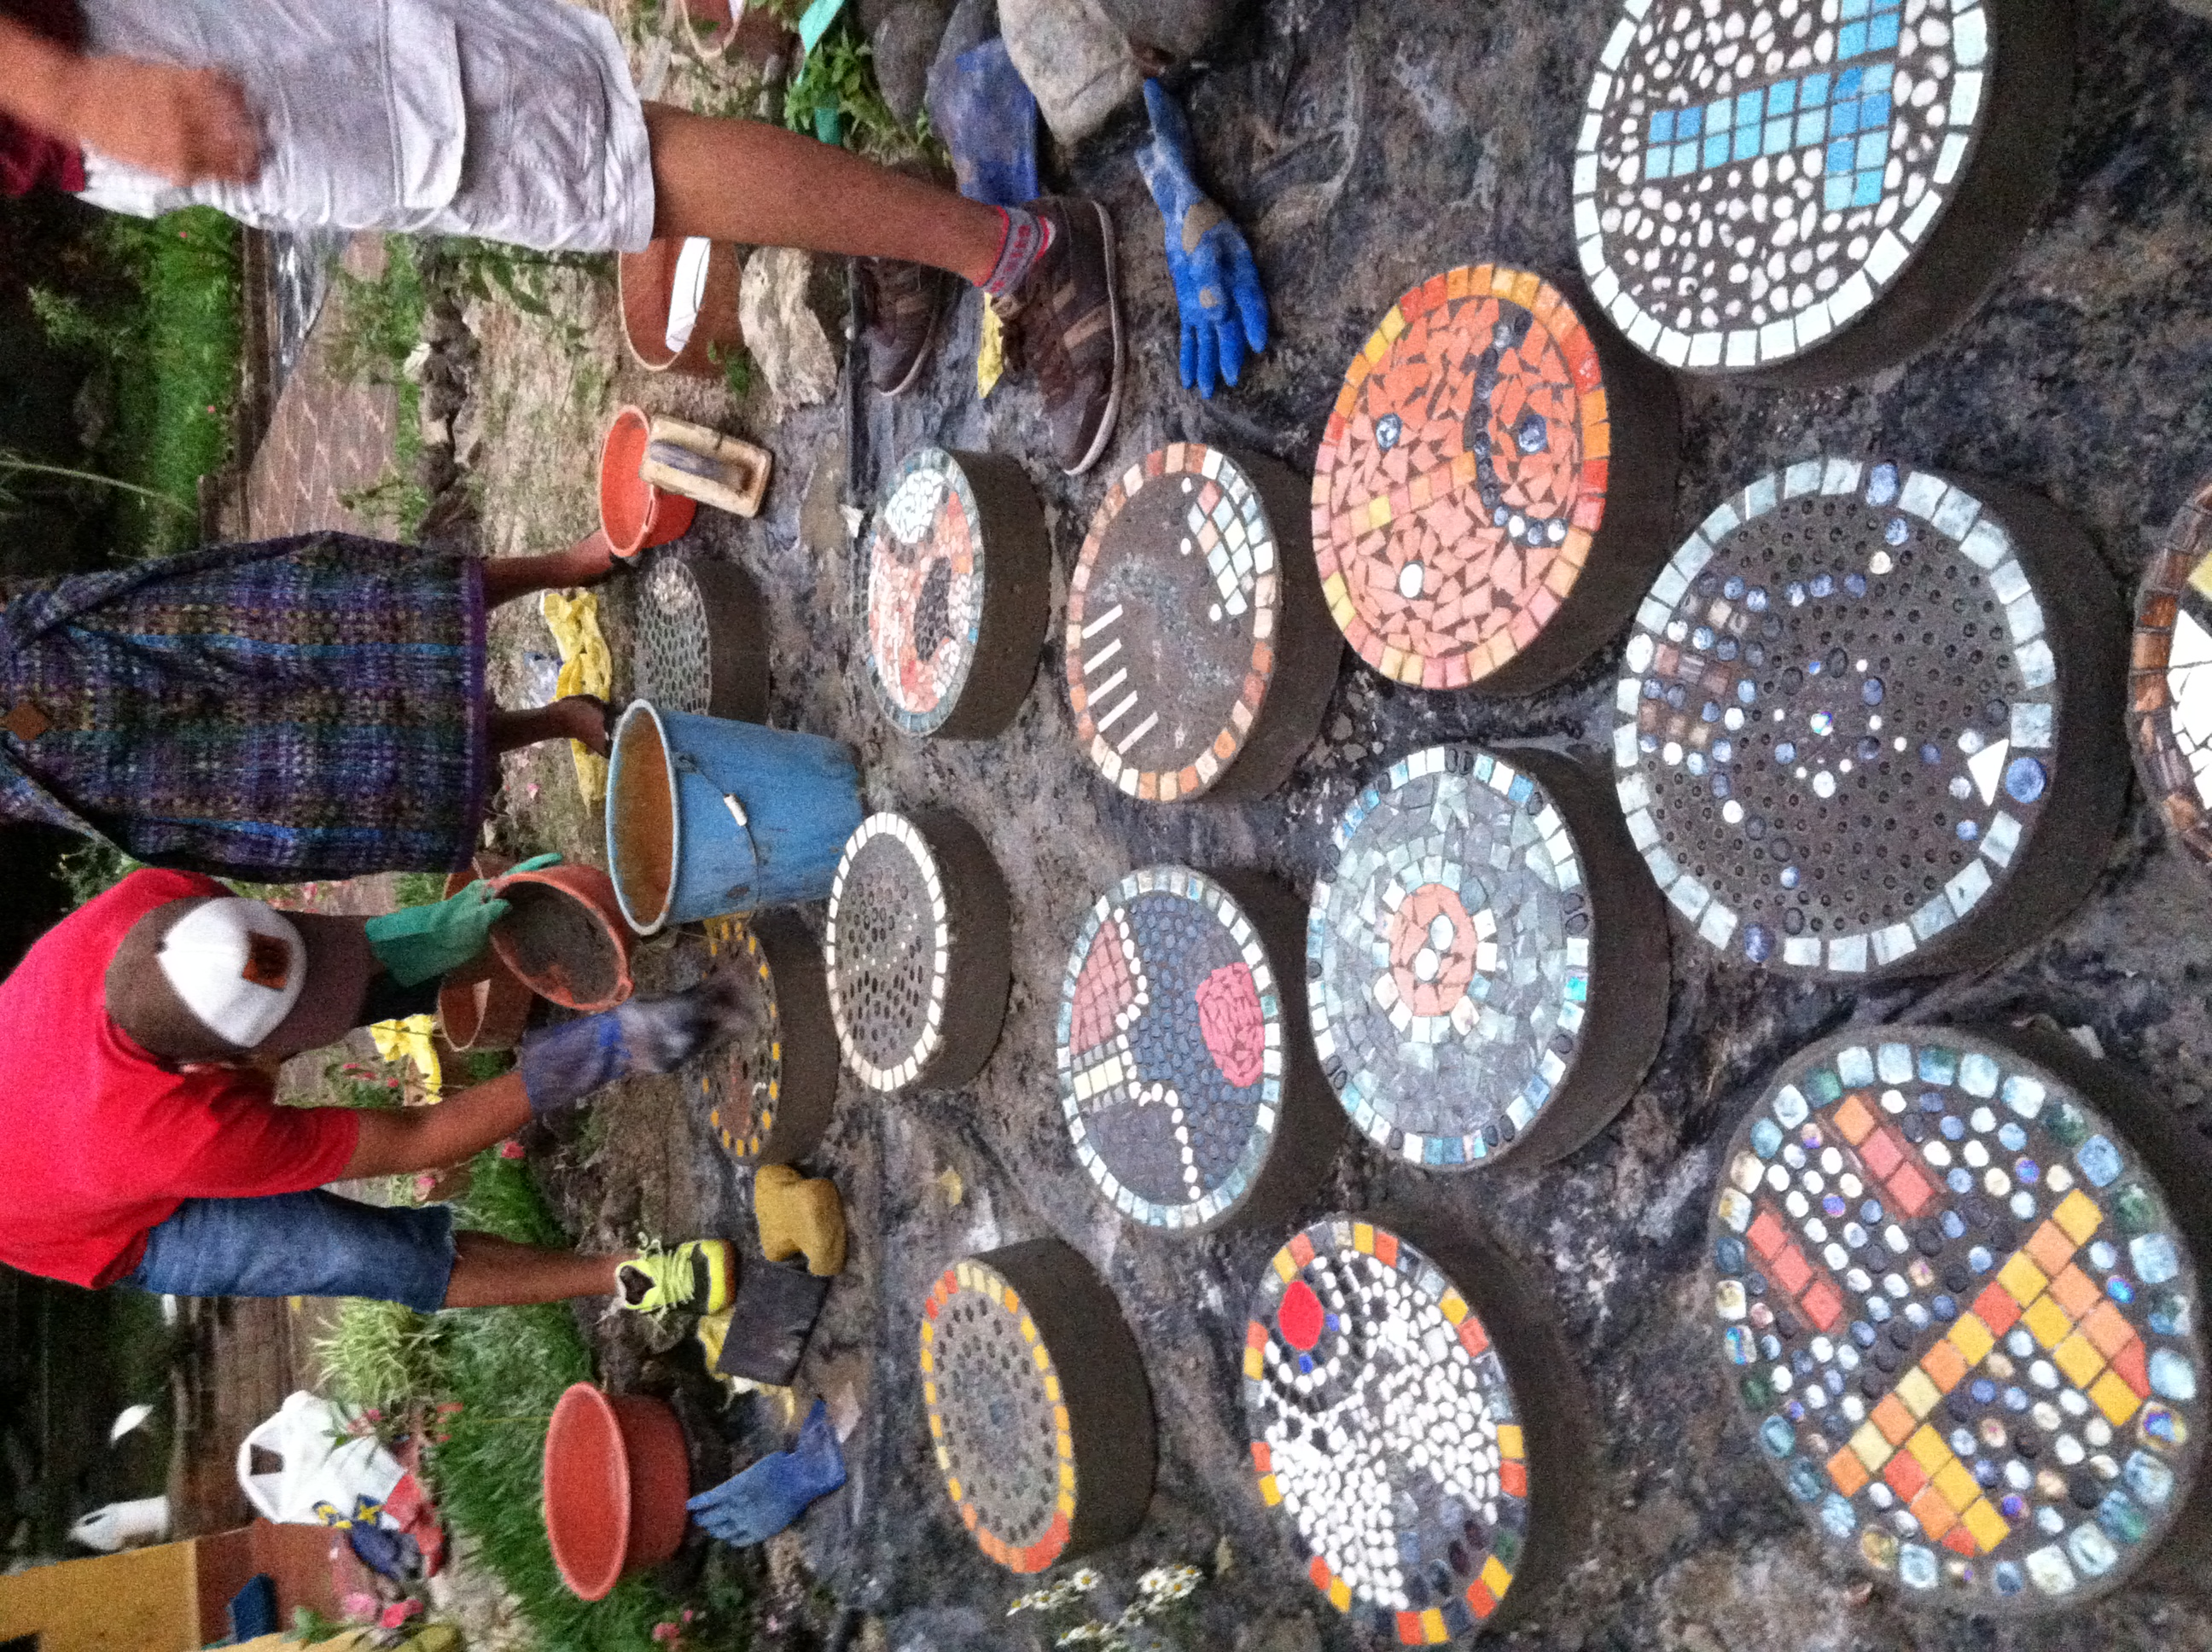 Grouting finished pieces